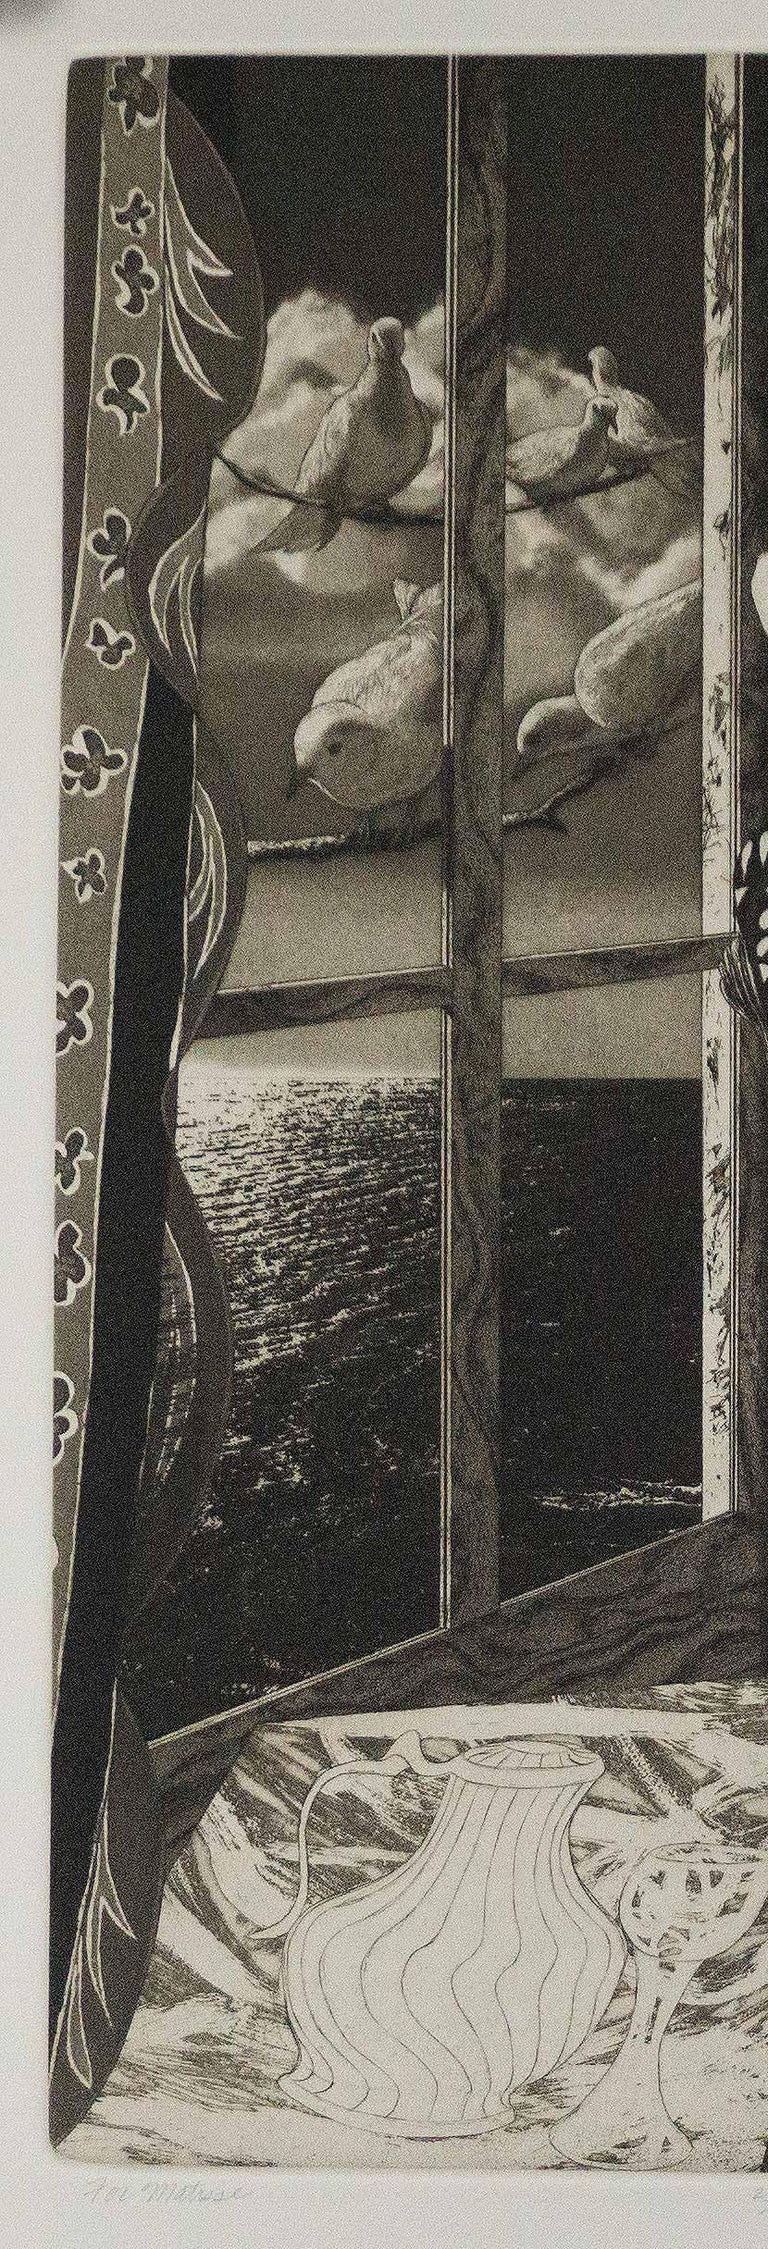 For Matisse (Henri Matisse surrounded by his imagery and iconography) - Black Nude Print by David Bumbeck